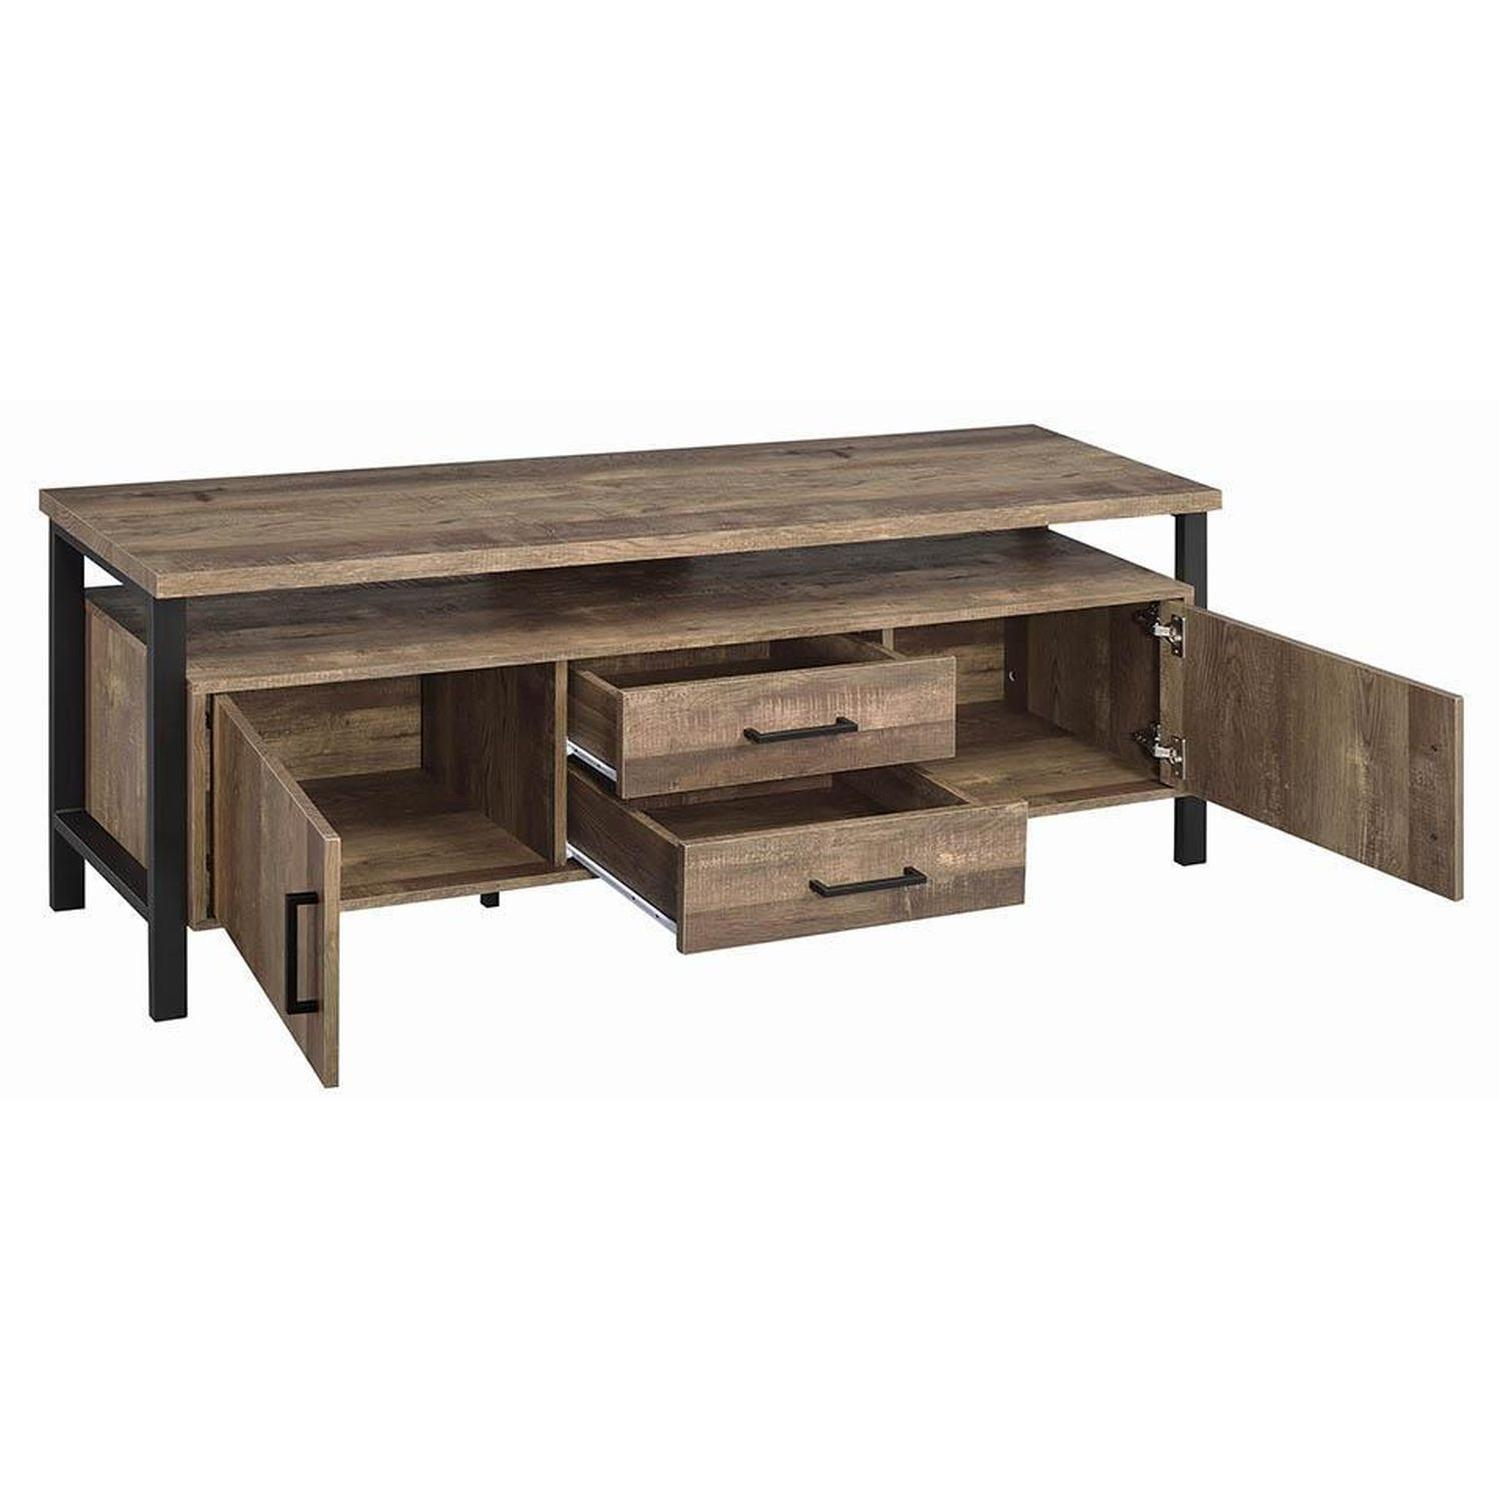 TV Stand In Rustic Oak Finish w/ 2 Cabinets & 2 Drawers - image-1